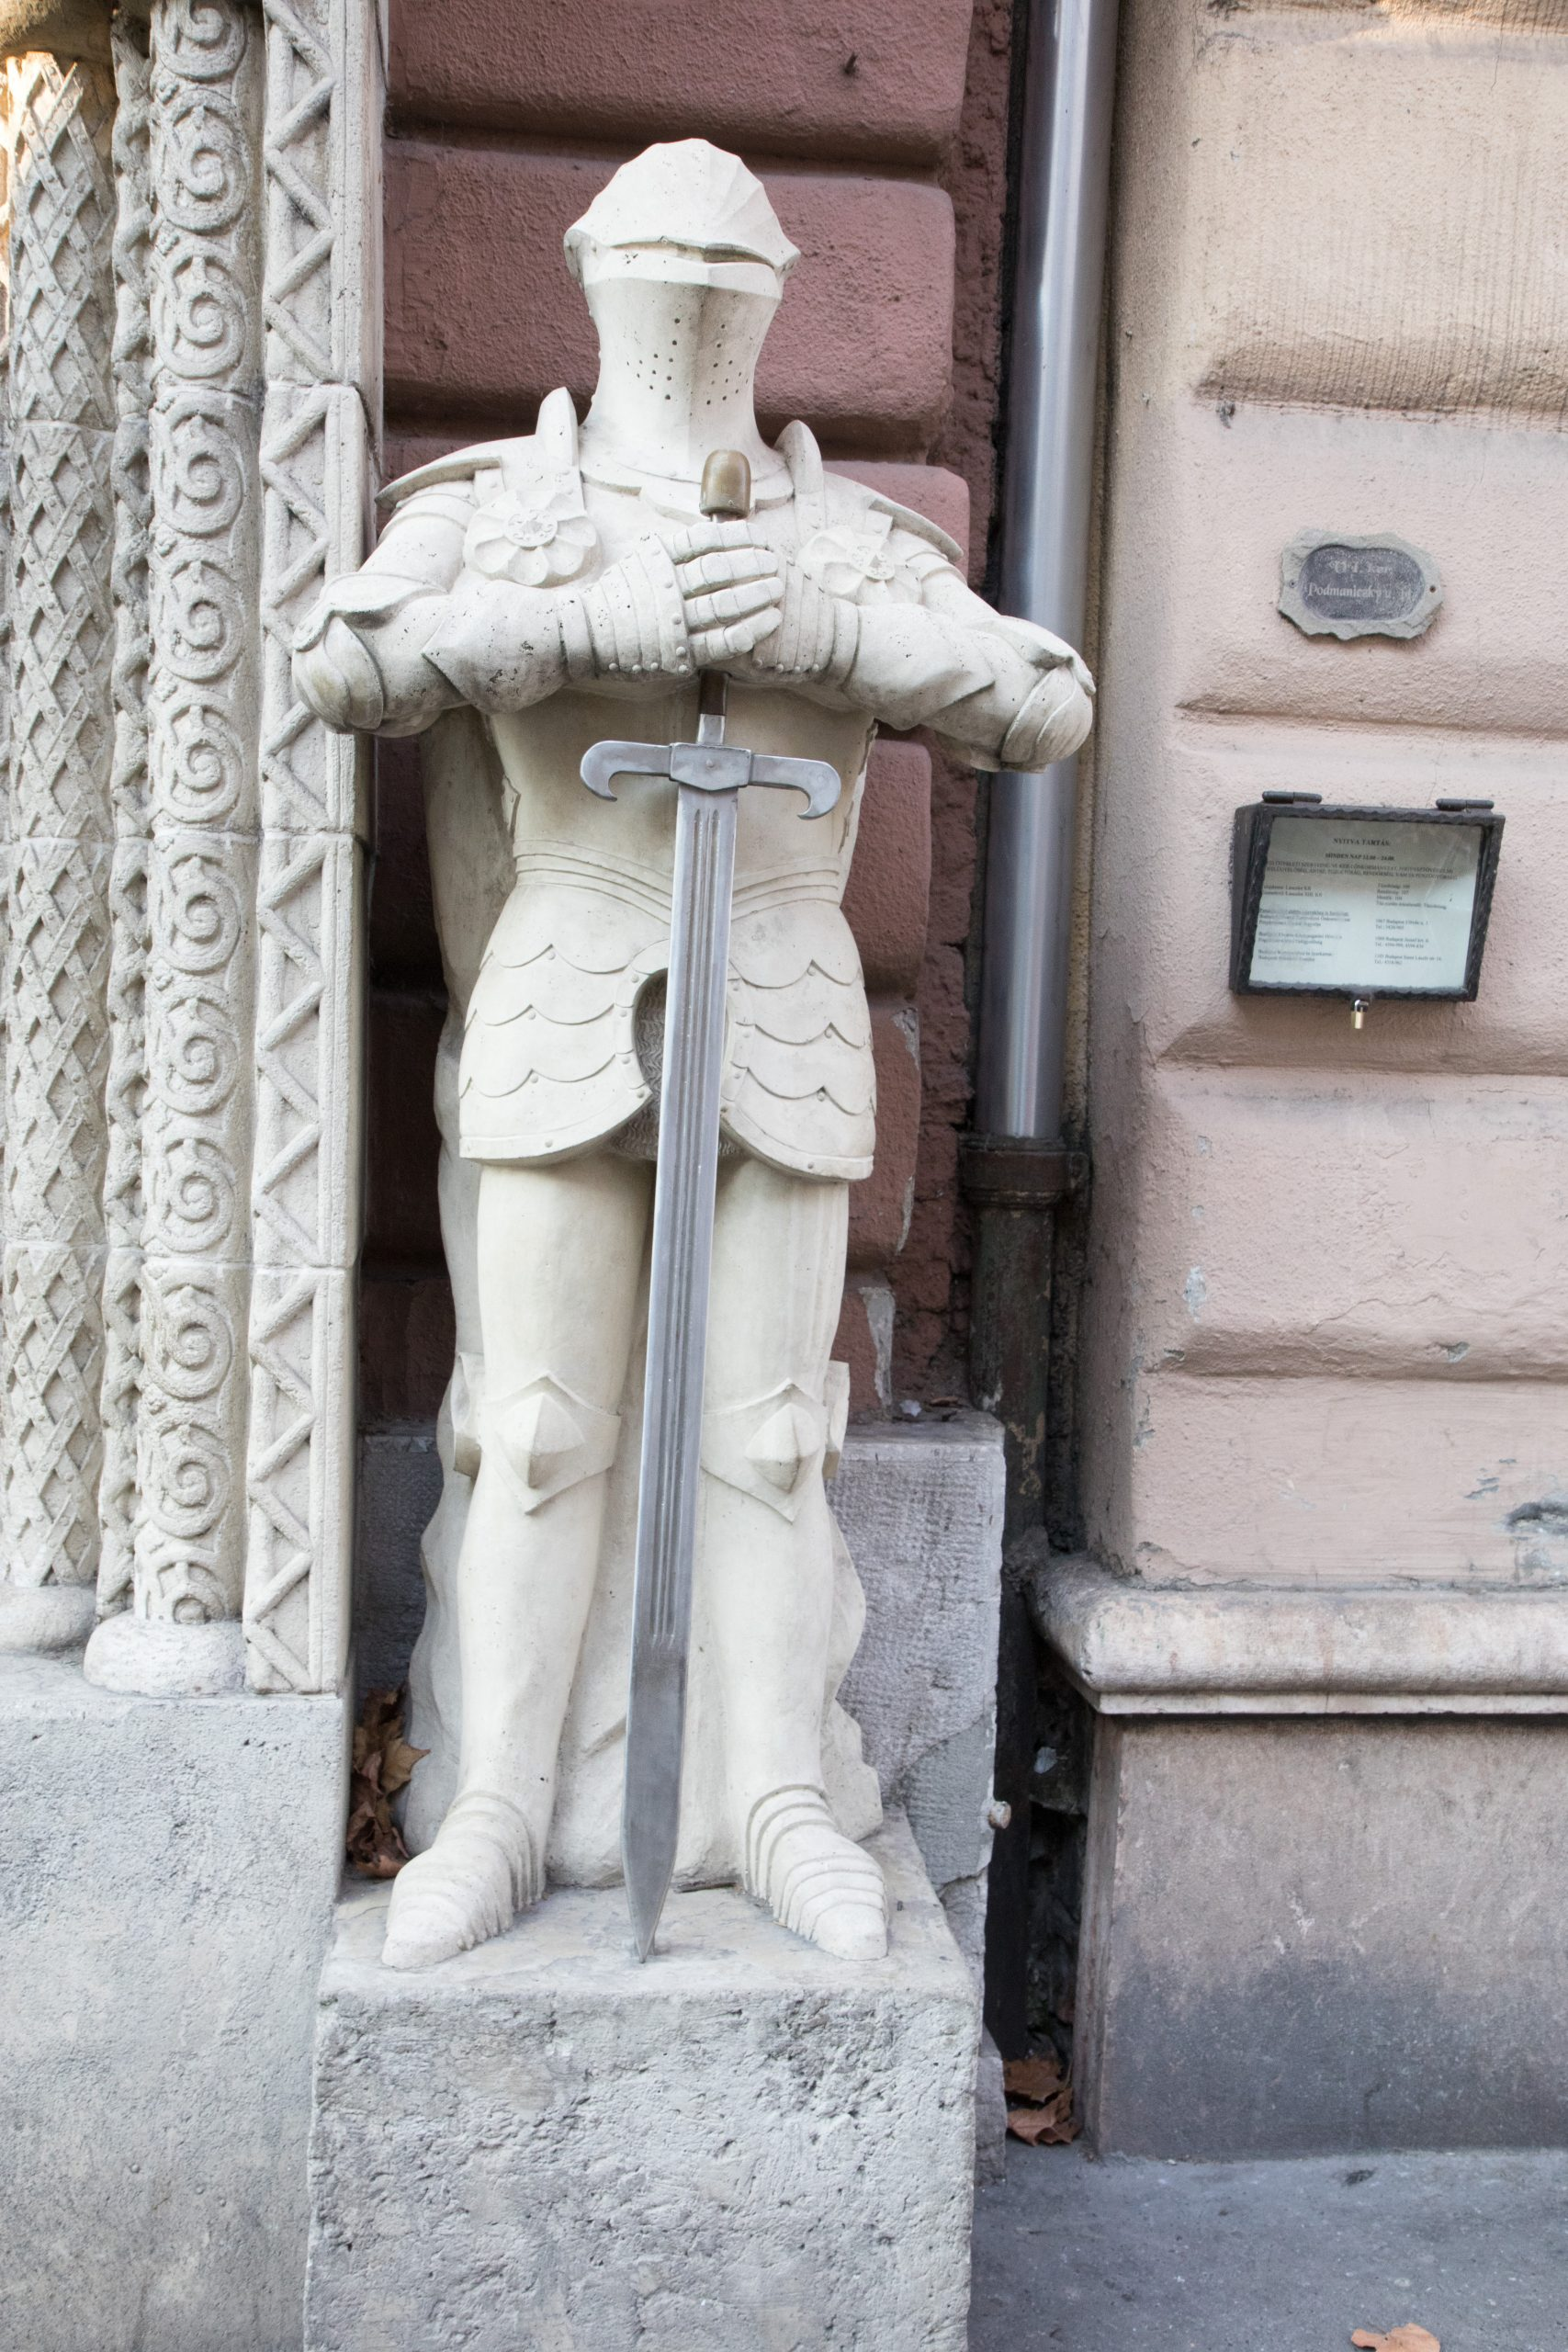 We saw quite a few stone knights around the city. They look really marvolous.